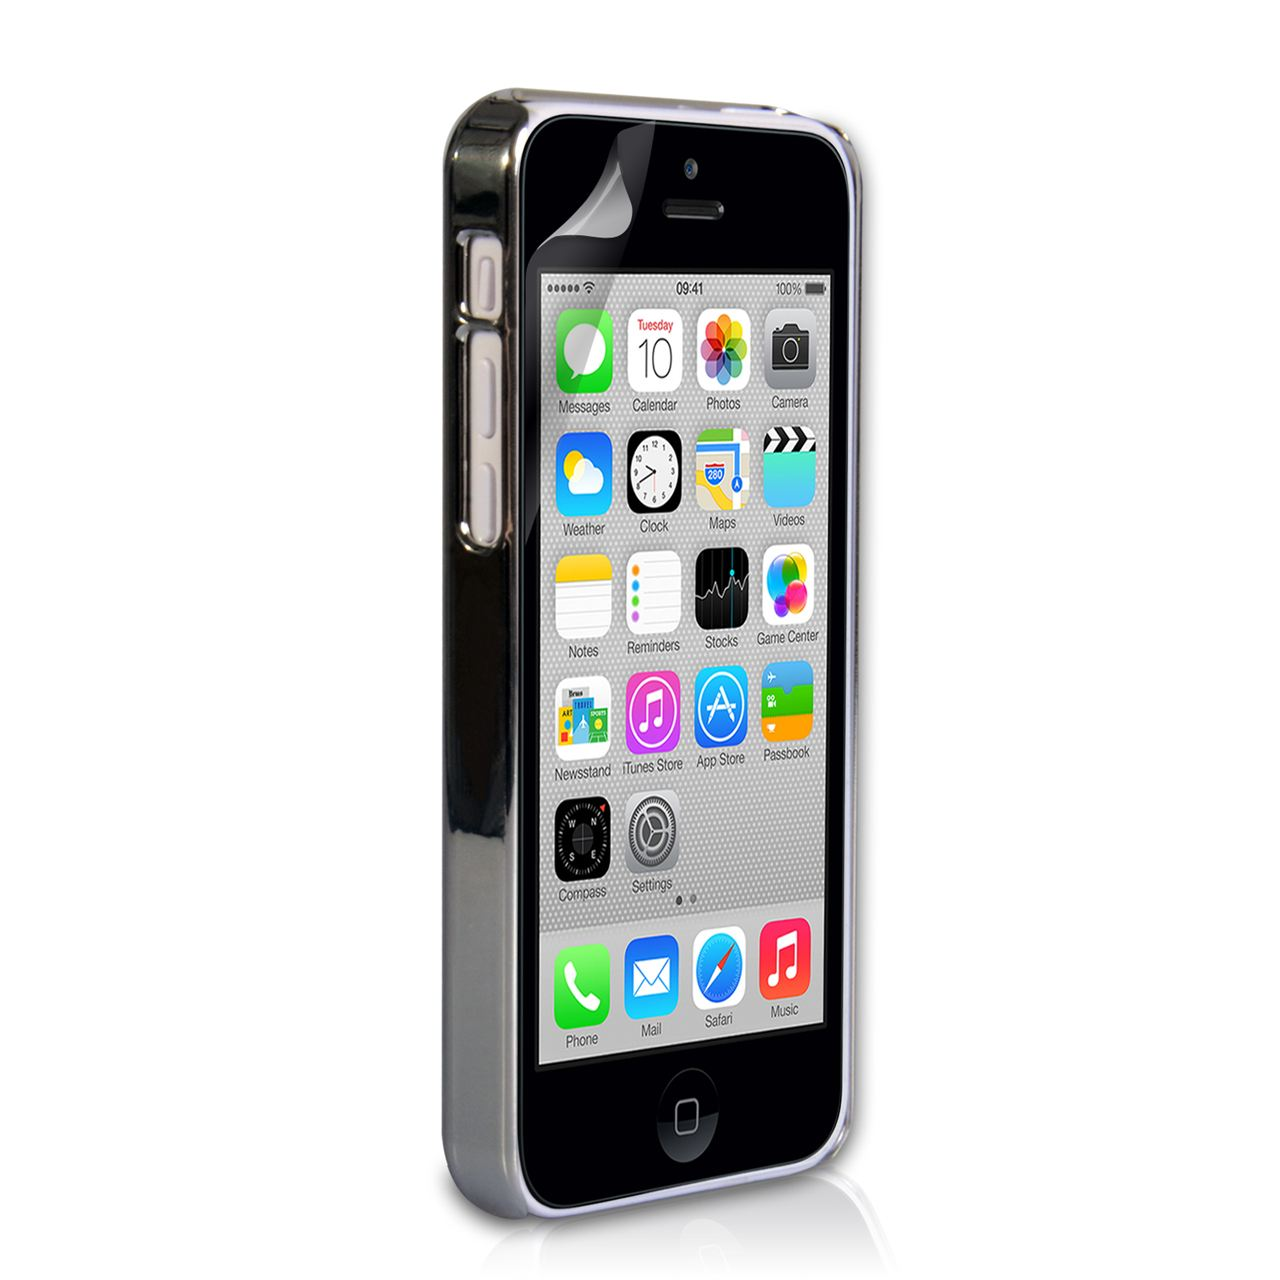 YouSave Accessories iPhone 5C Hard Case - Chrome and Brushed Metal